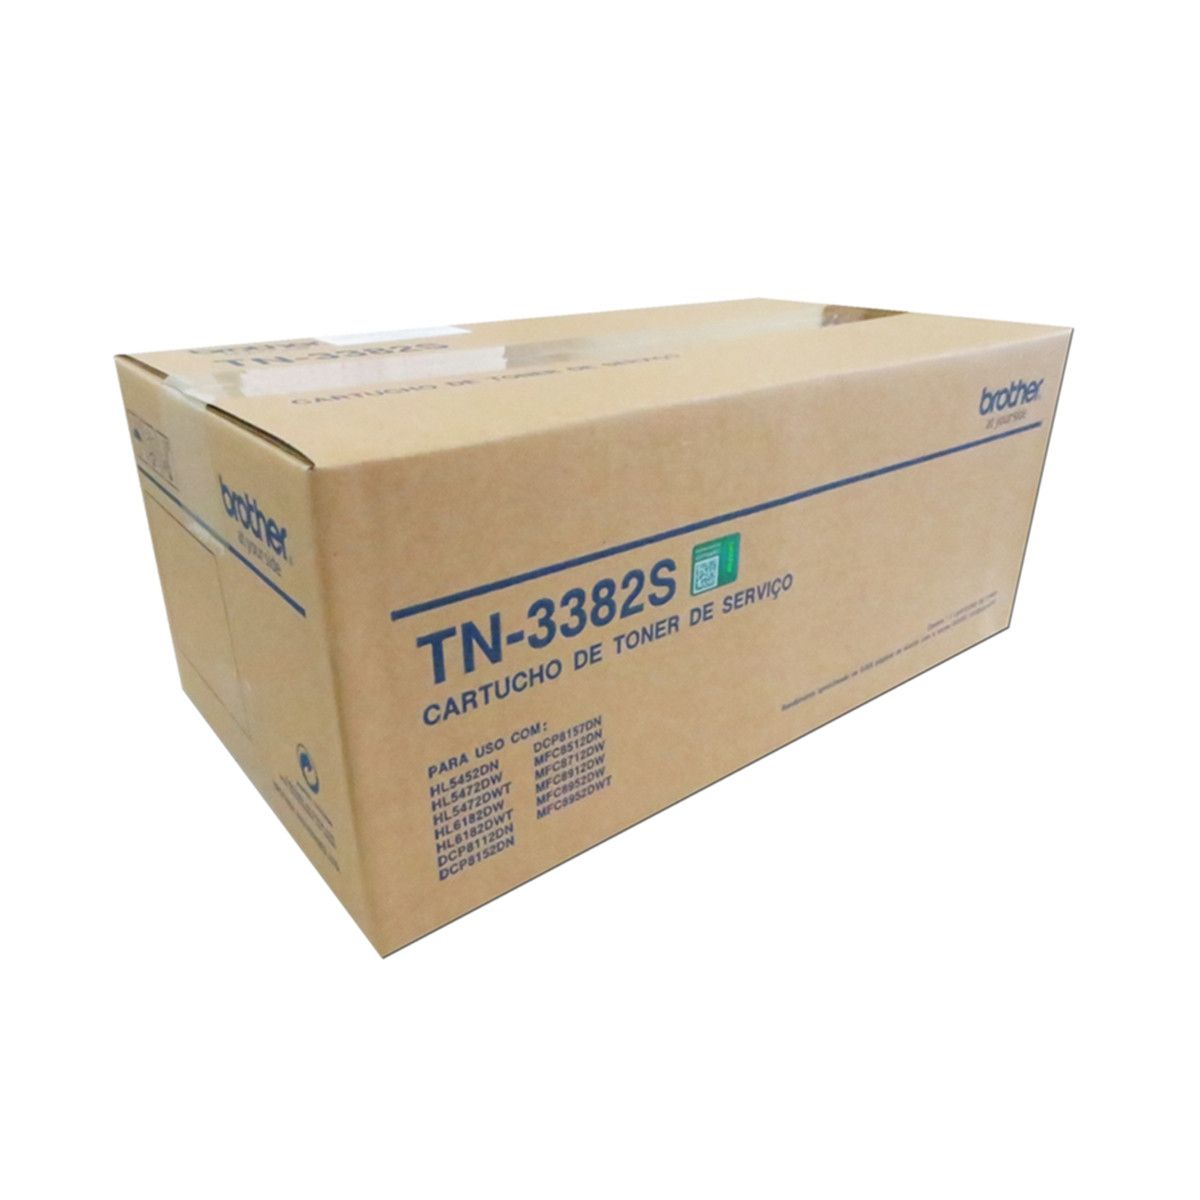 TN-3382S (TN3382S) - CARTUCHO DE TONER ORIGINAL PARA BROTHER DCP-8157DN E SERIES